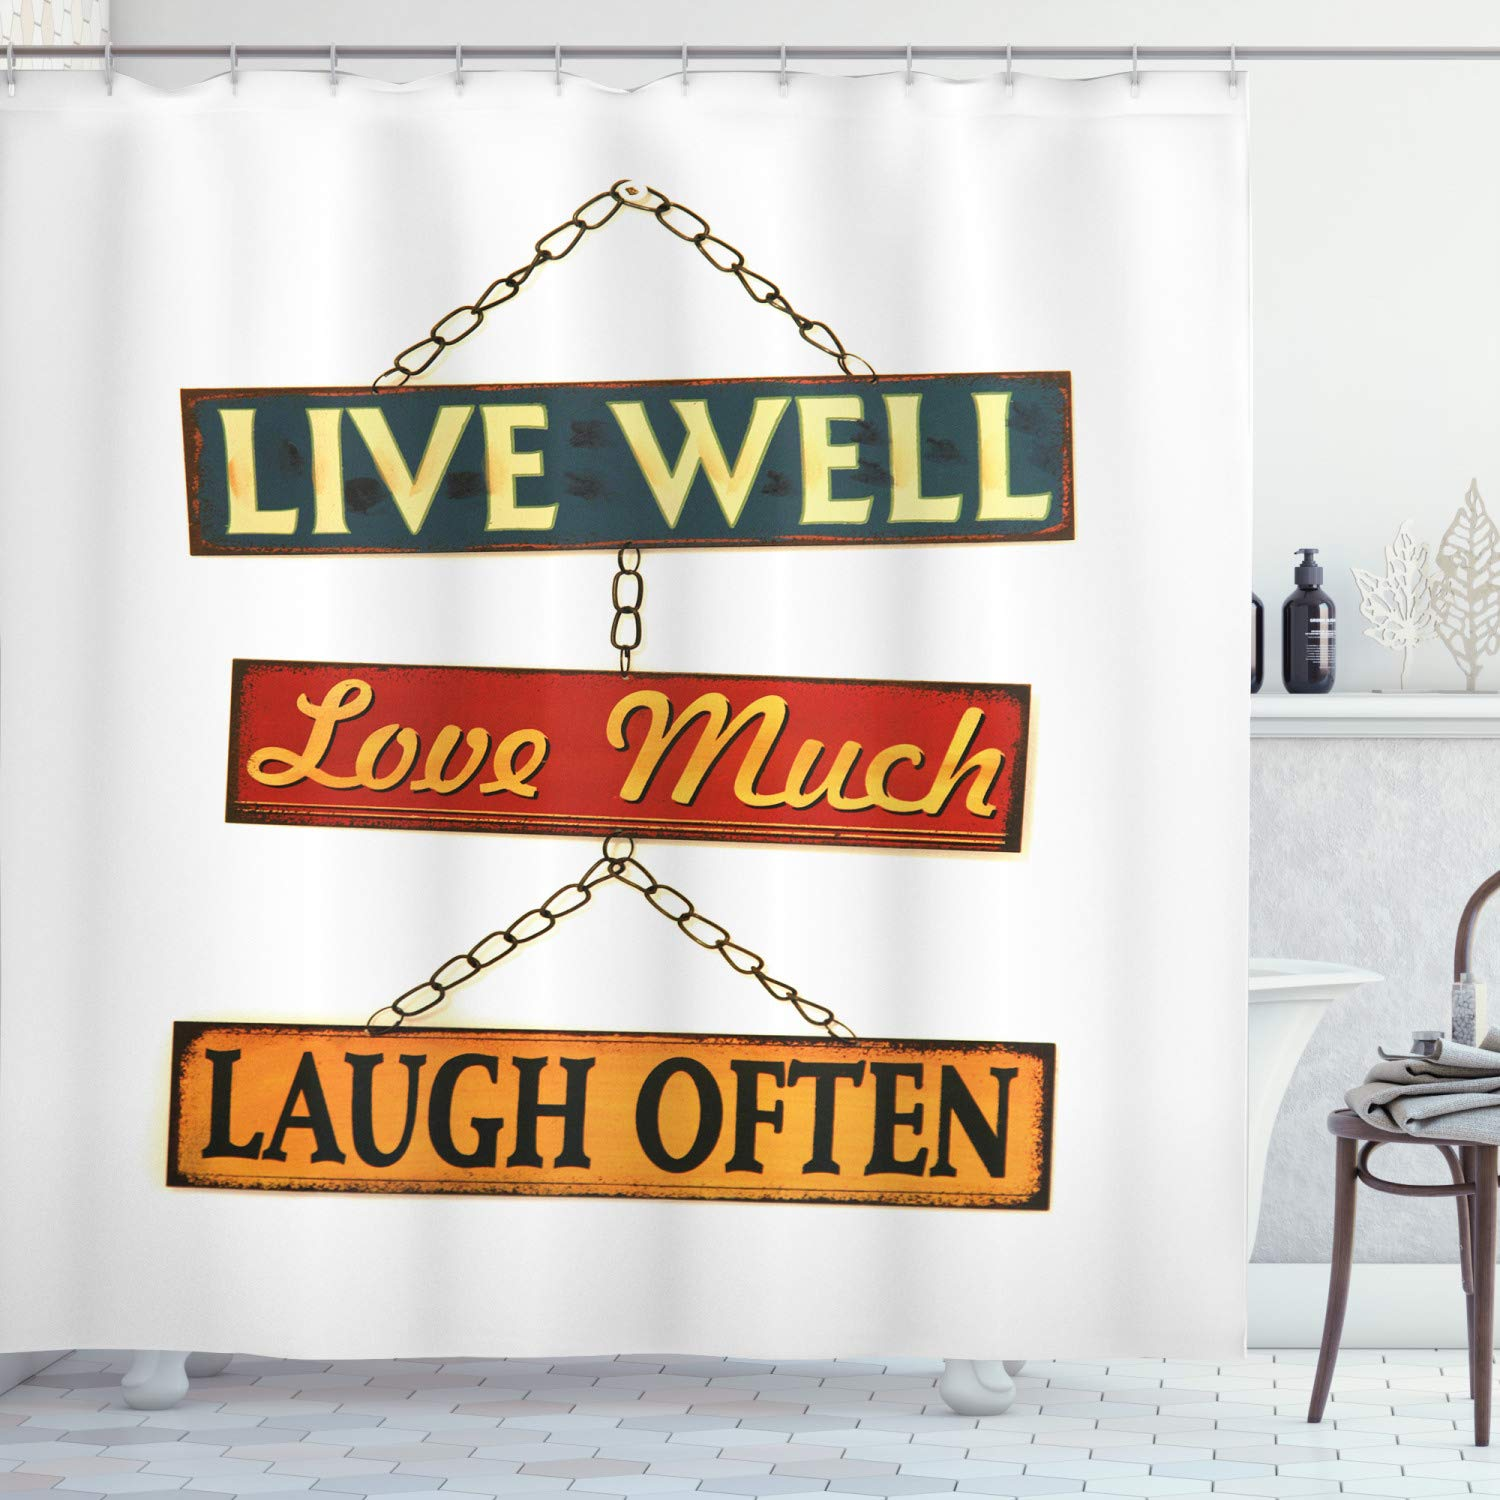 """Ambesonne Live Laugh Love Shower Curtain, Live Well Love Much Laugh Often Words Rusty Signs Tied with Chains Print, Cloth Fabric Bathroom Decor Set with Hooks, 75"""" Long, Red Yellow"""